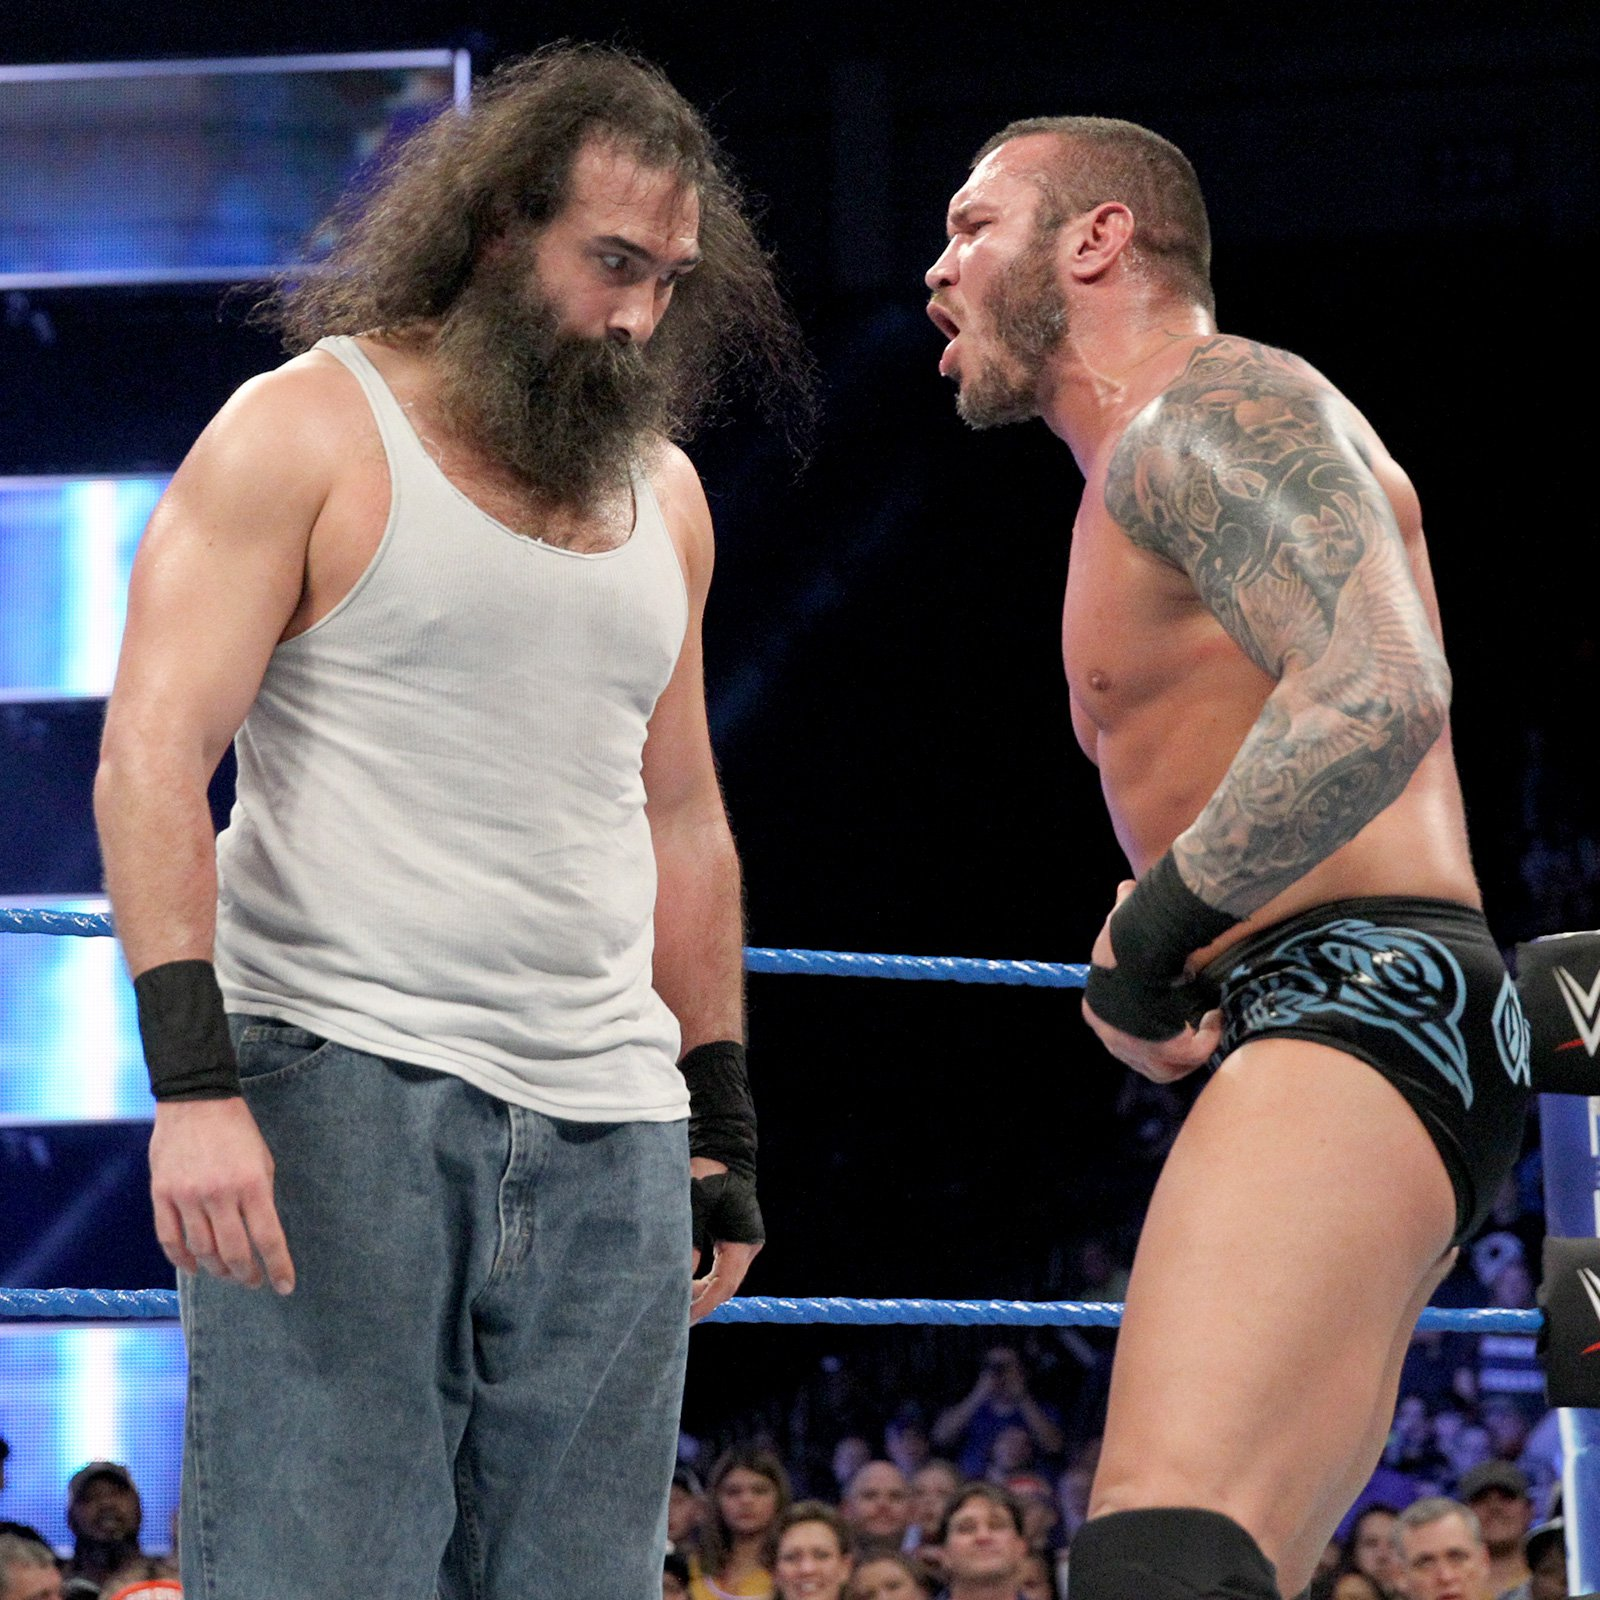 After the bell, things quickly turn tense between Orton and Harper.